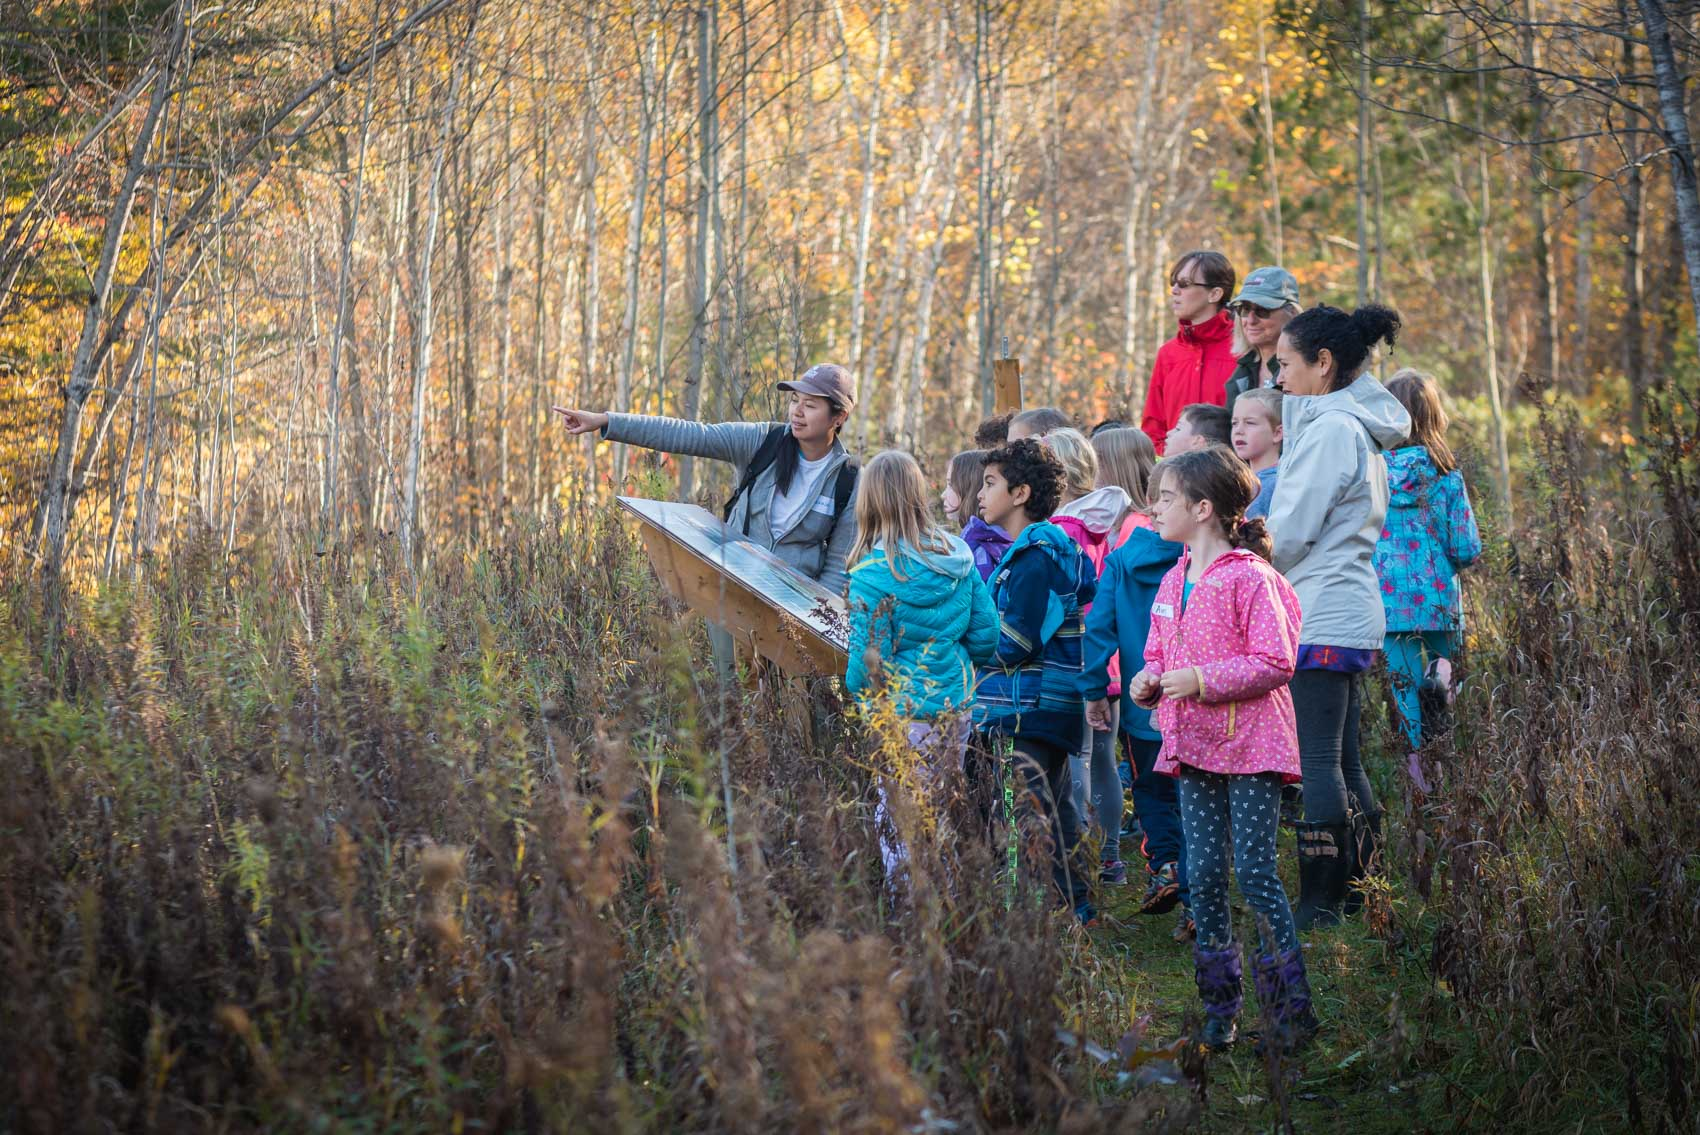 A Nature Conservancy of Canada conservation biologist points out to a field with a group of children in Happy Valley Forest